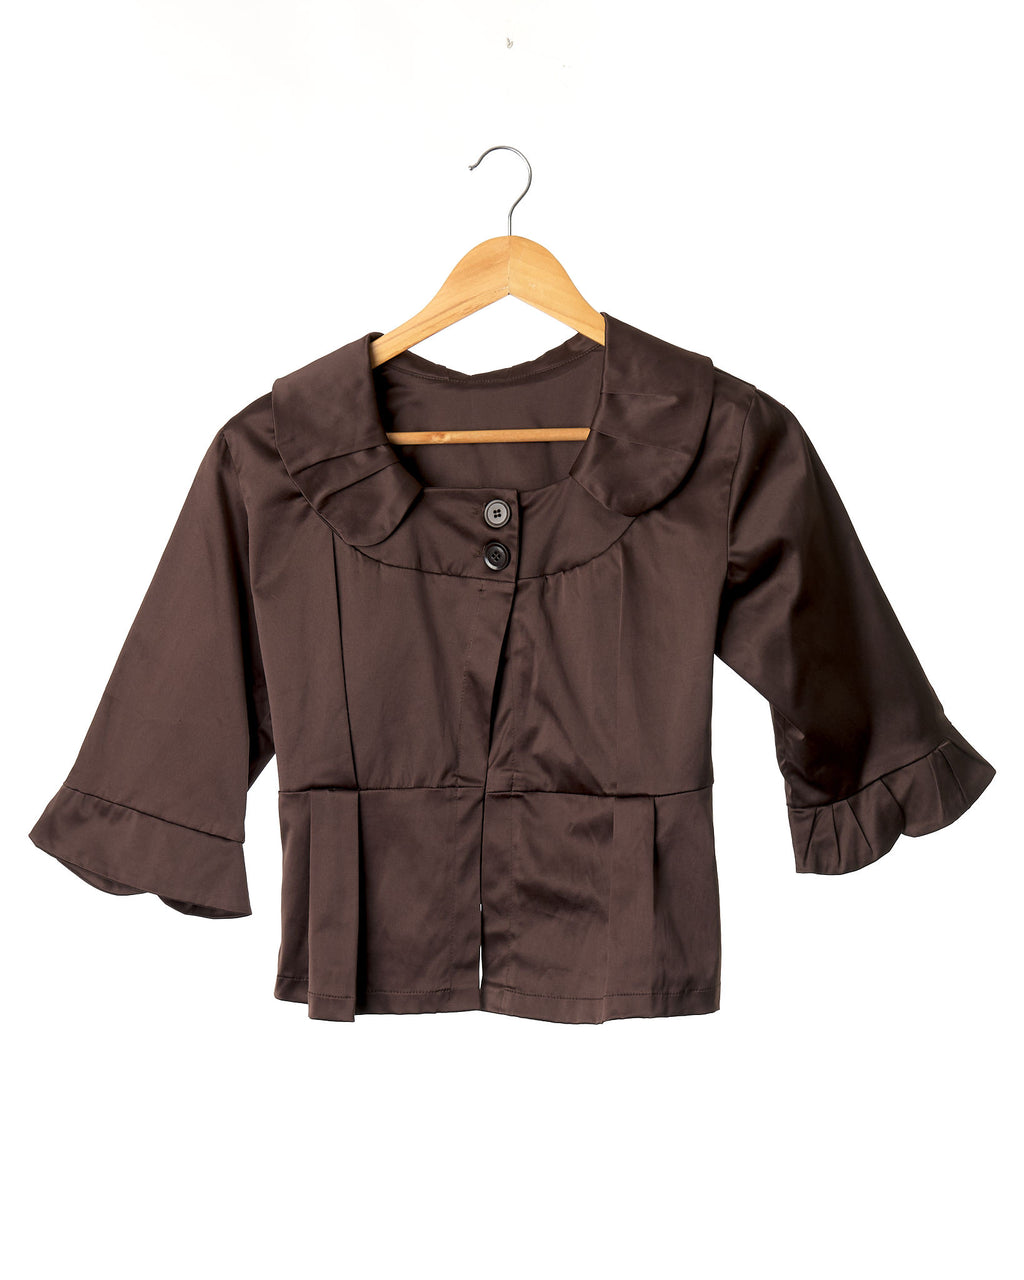 Vintage Chocolate Brown Satin Bolero